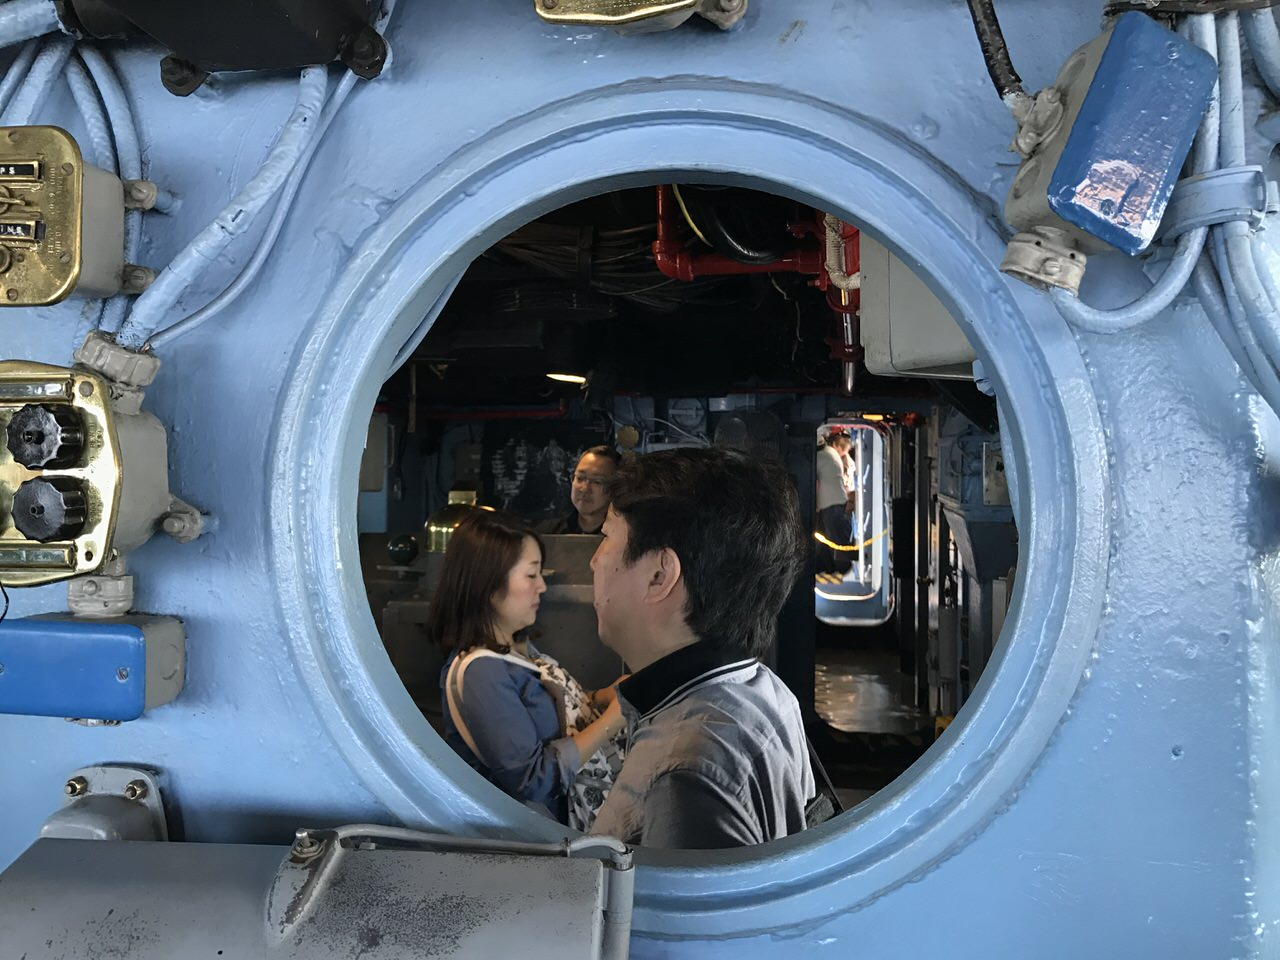 Uss midway museum 0583